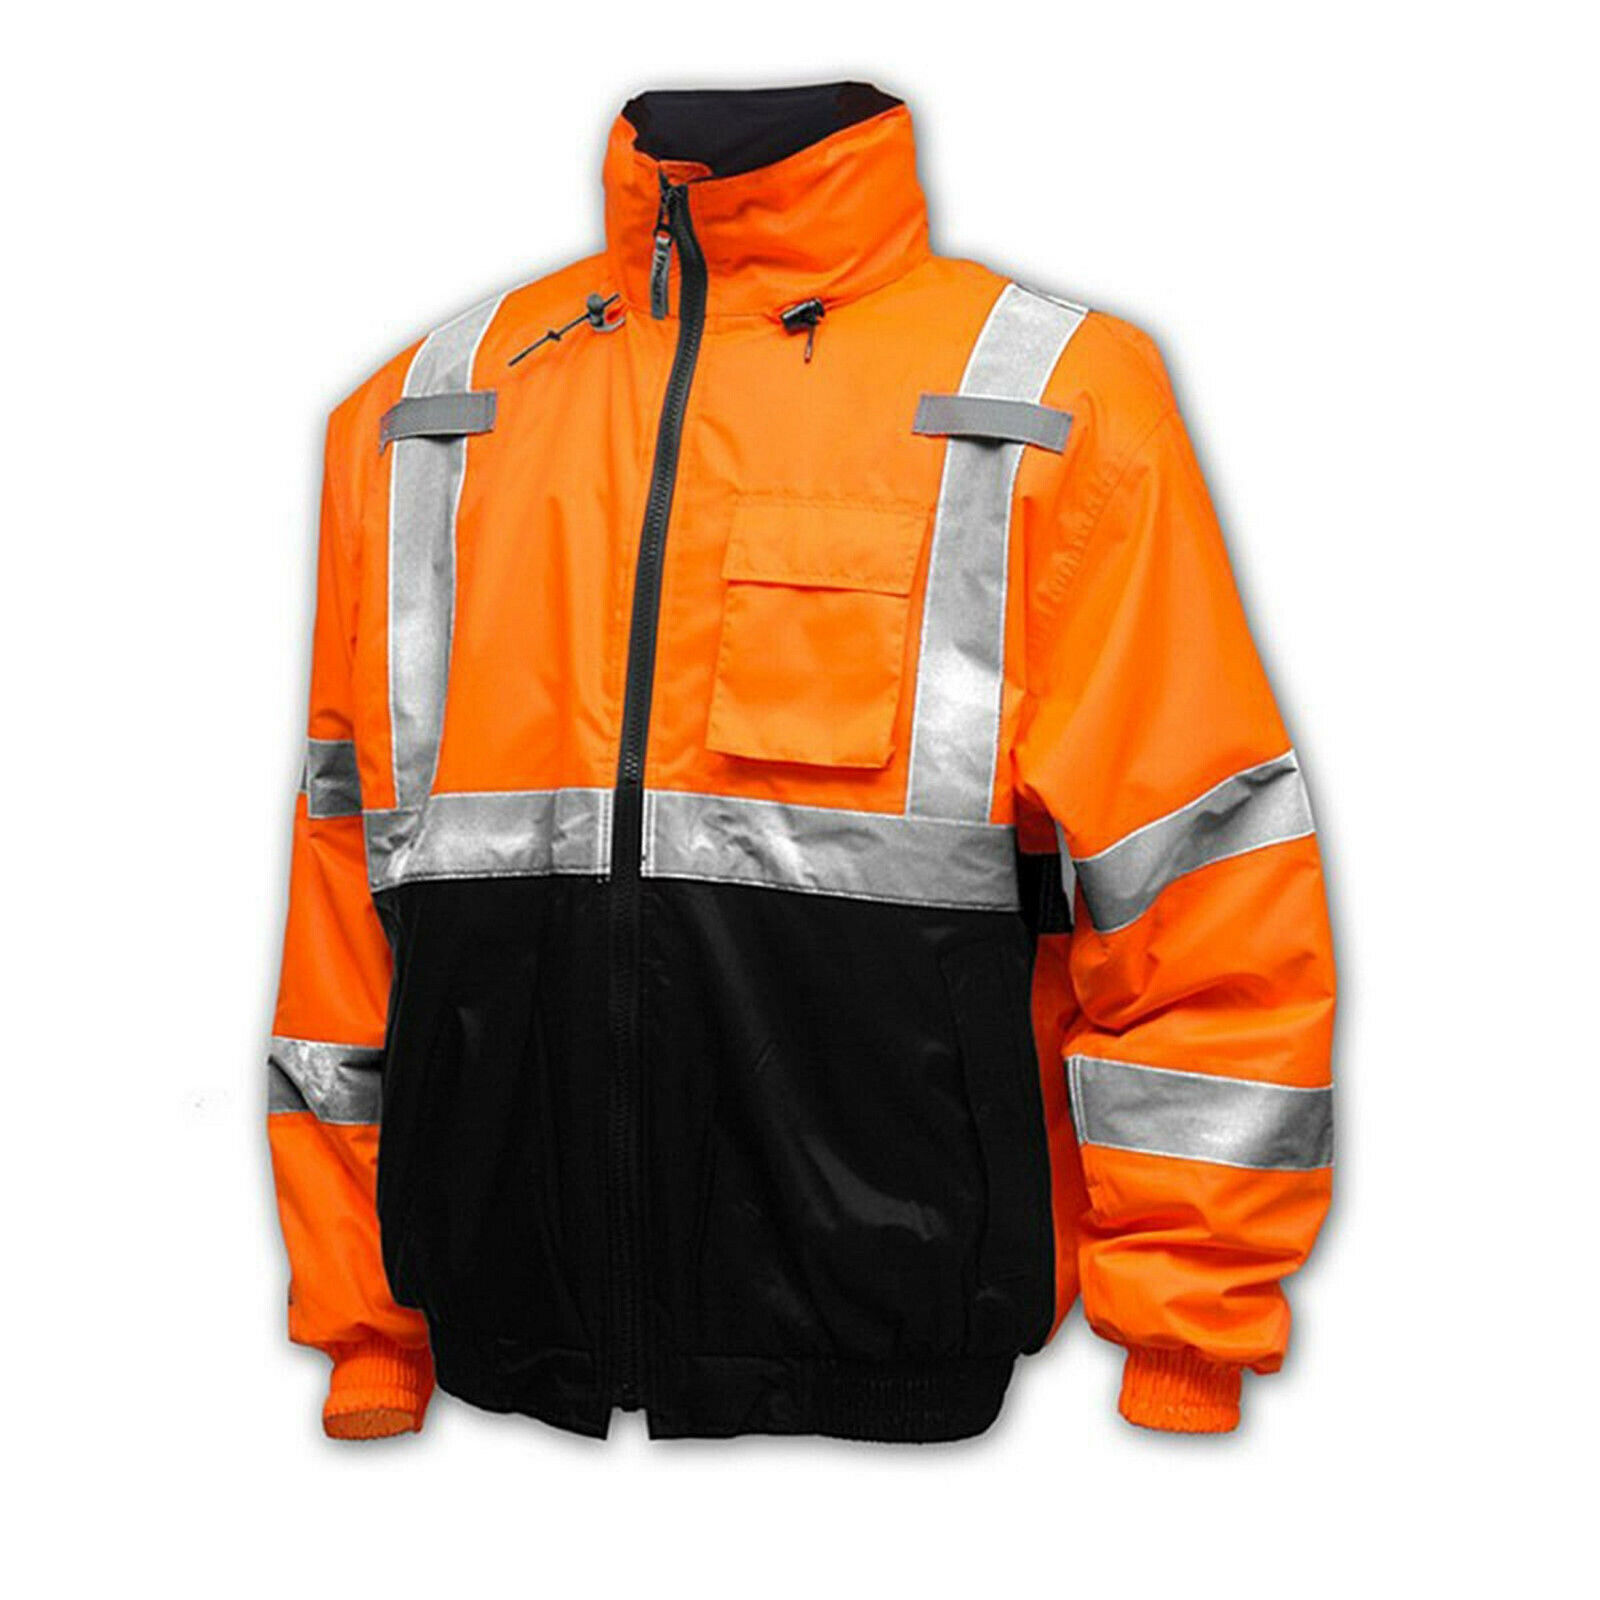 Men's Class 3 Safety High Visibility Water Resistant Reflective Neon Work Jacket image 7